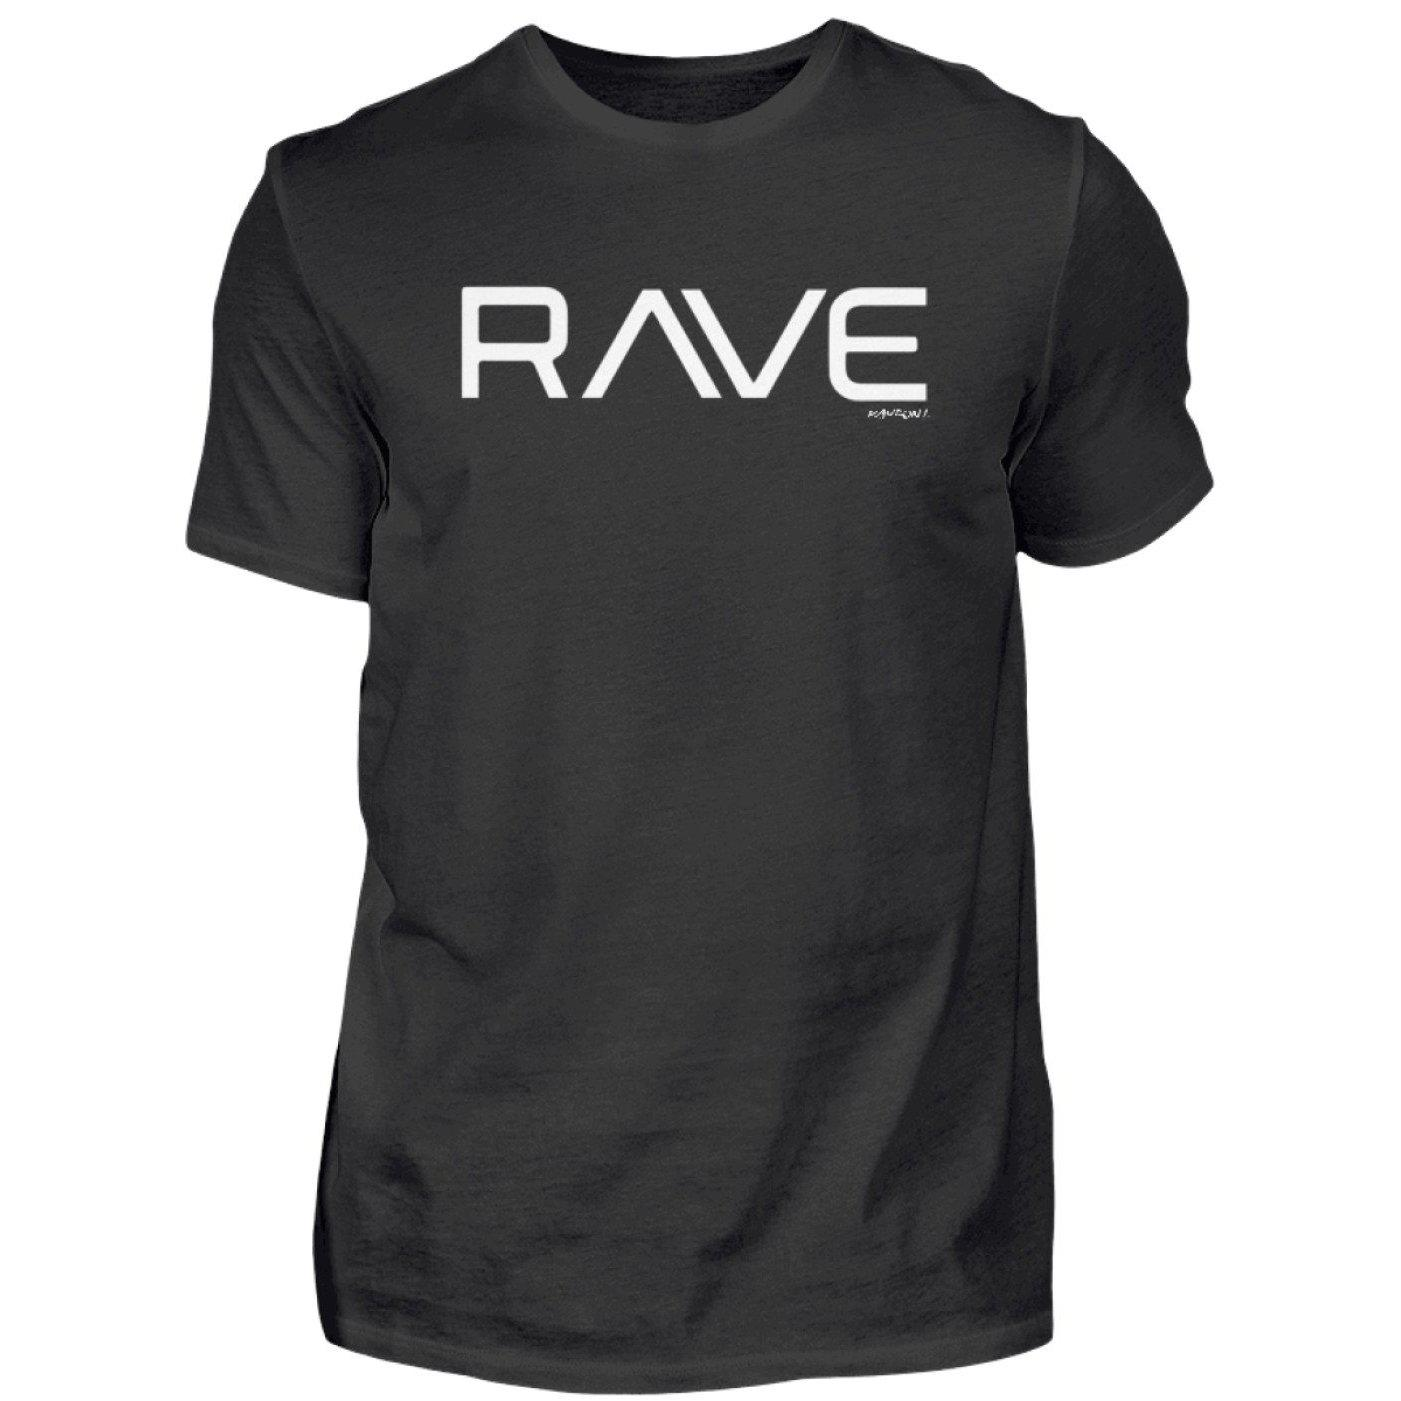 RAVE - Rave On!® Black T-Shirt - Herren Premiumshirt Herren Premium Shirt Black / S - Rave On!® der Club & Techno Szene Shop für Coole Junge Mode Streetwear Style & Fashion Outfits + Sexy Festival 420 Stuff